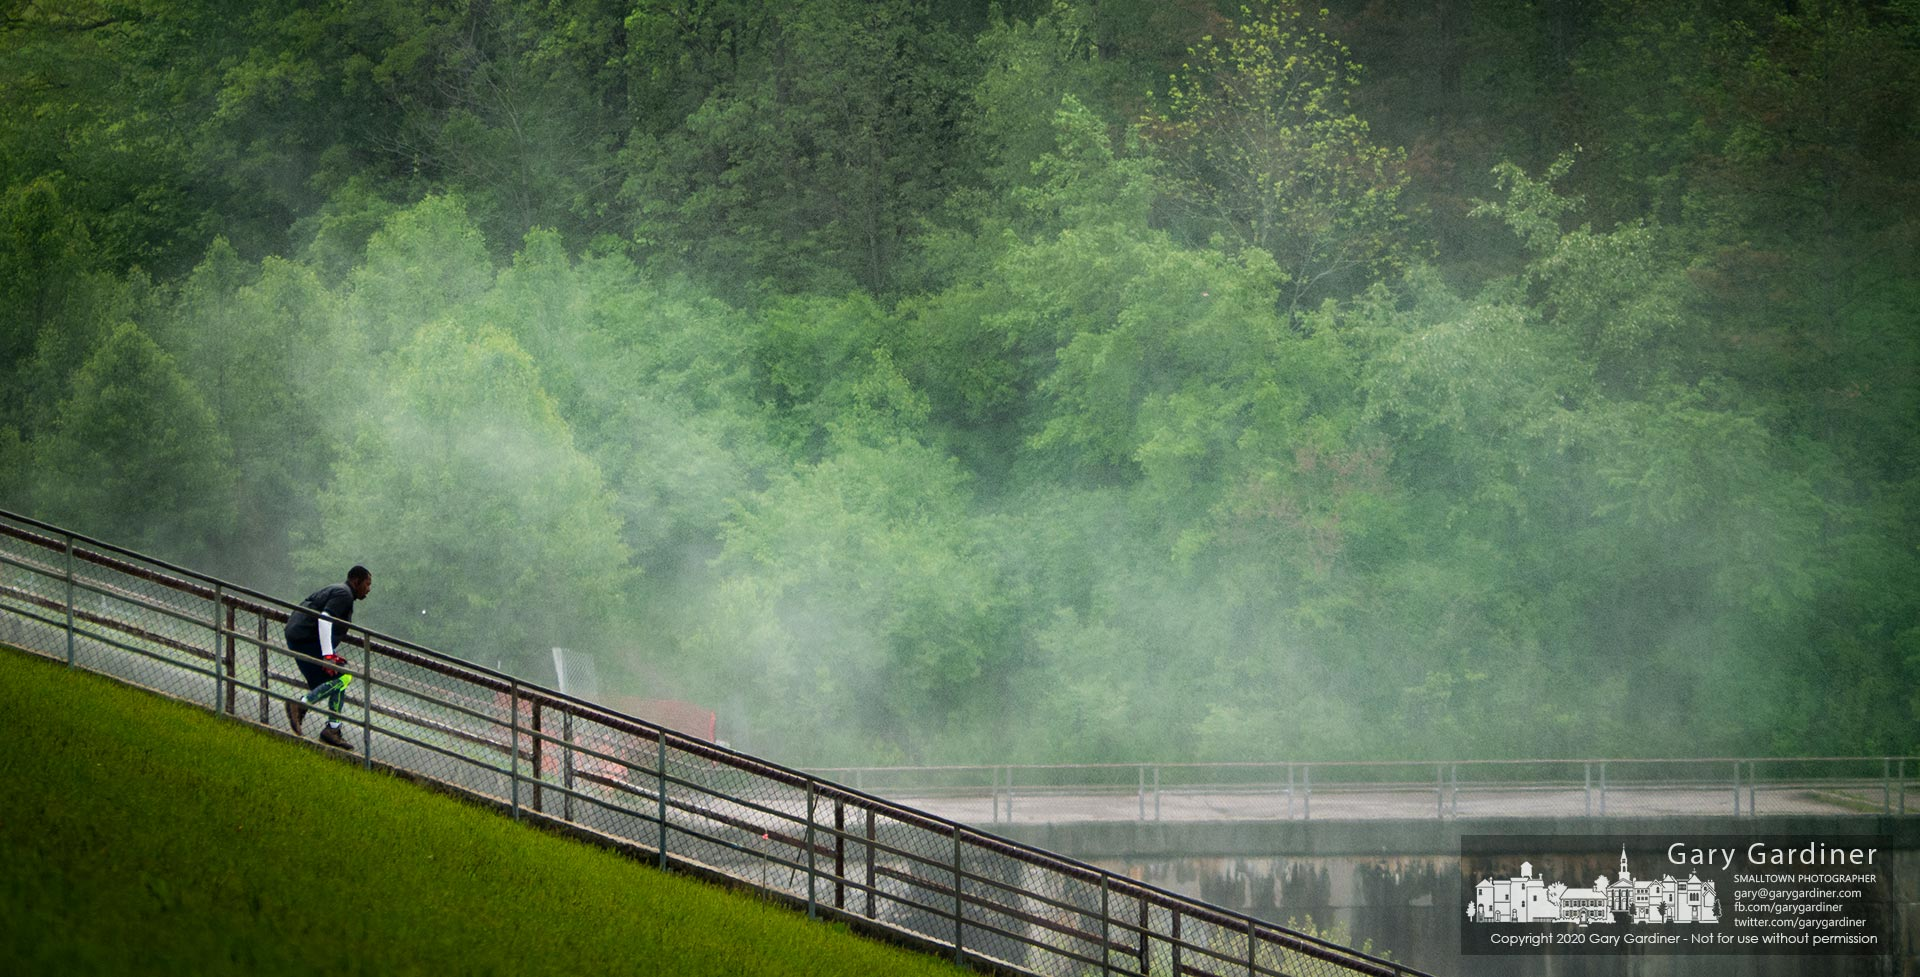 An athlete makes his way Wednesday morning down the stairs at Hoover Reservoir past a mist formed by the discharge from the dam where the water approached nearly two feet to the 900-foot depth measure on the dam. My Final Photo for May 20, 2020.